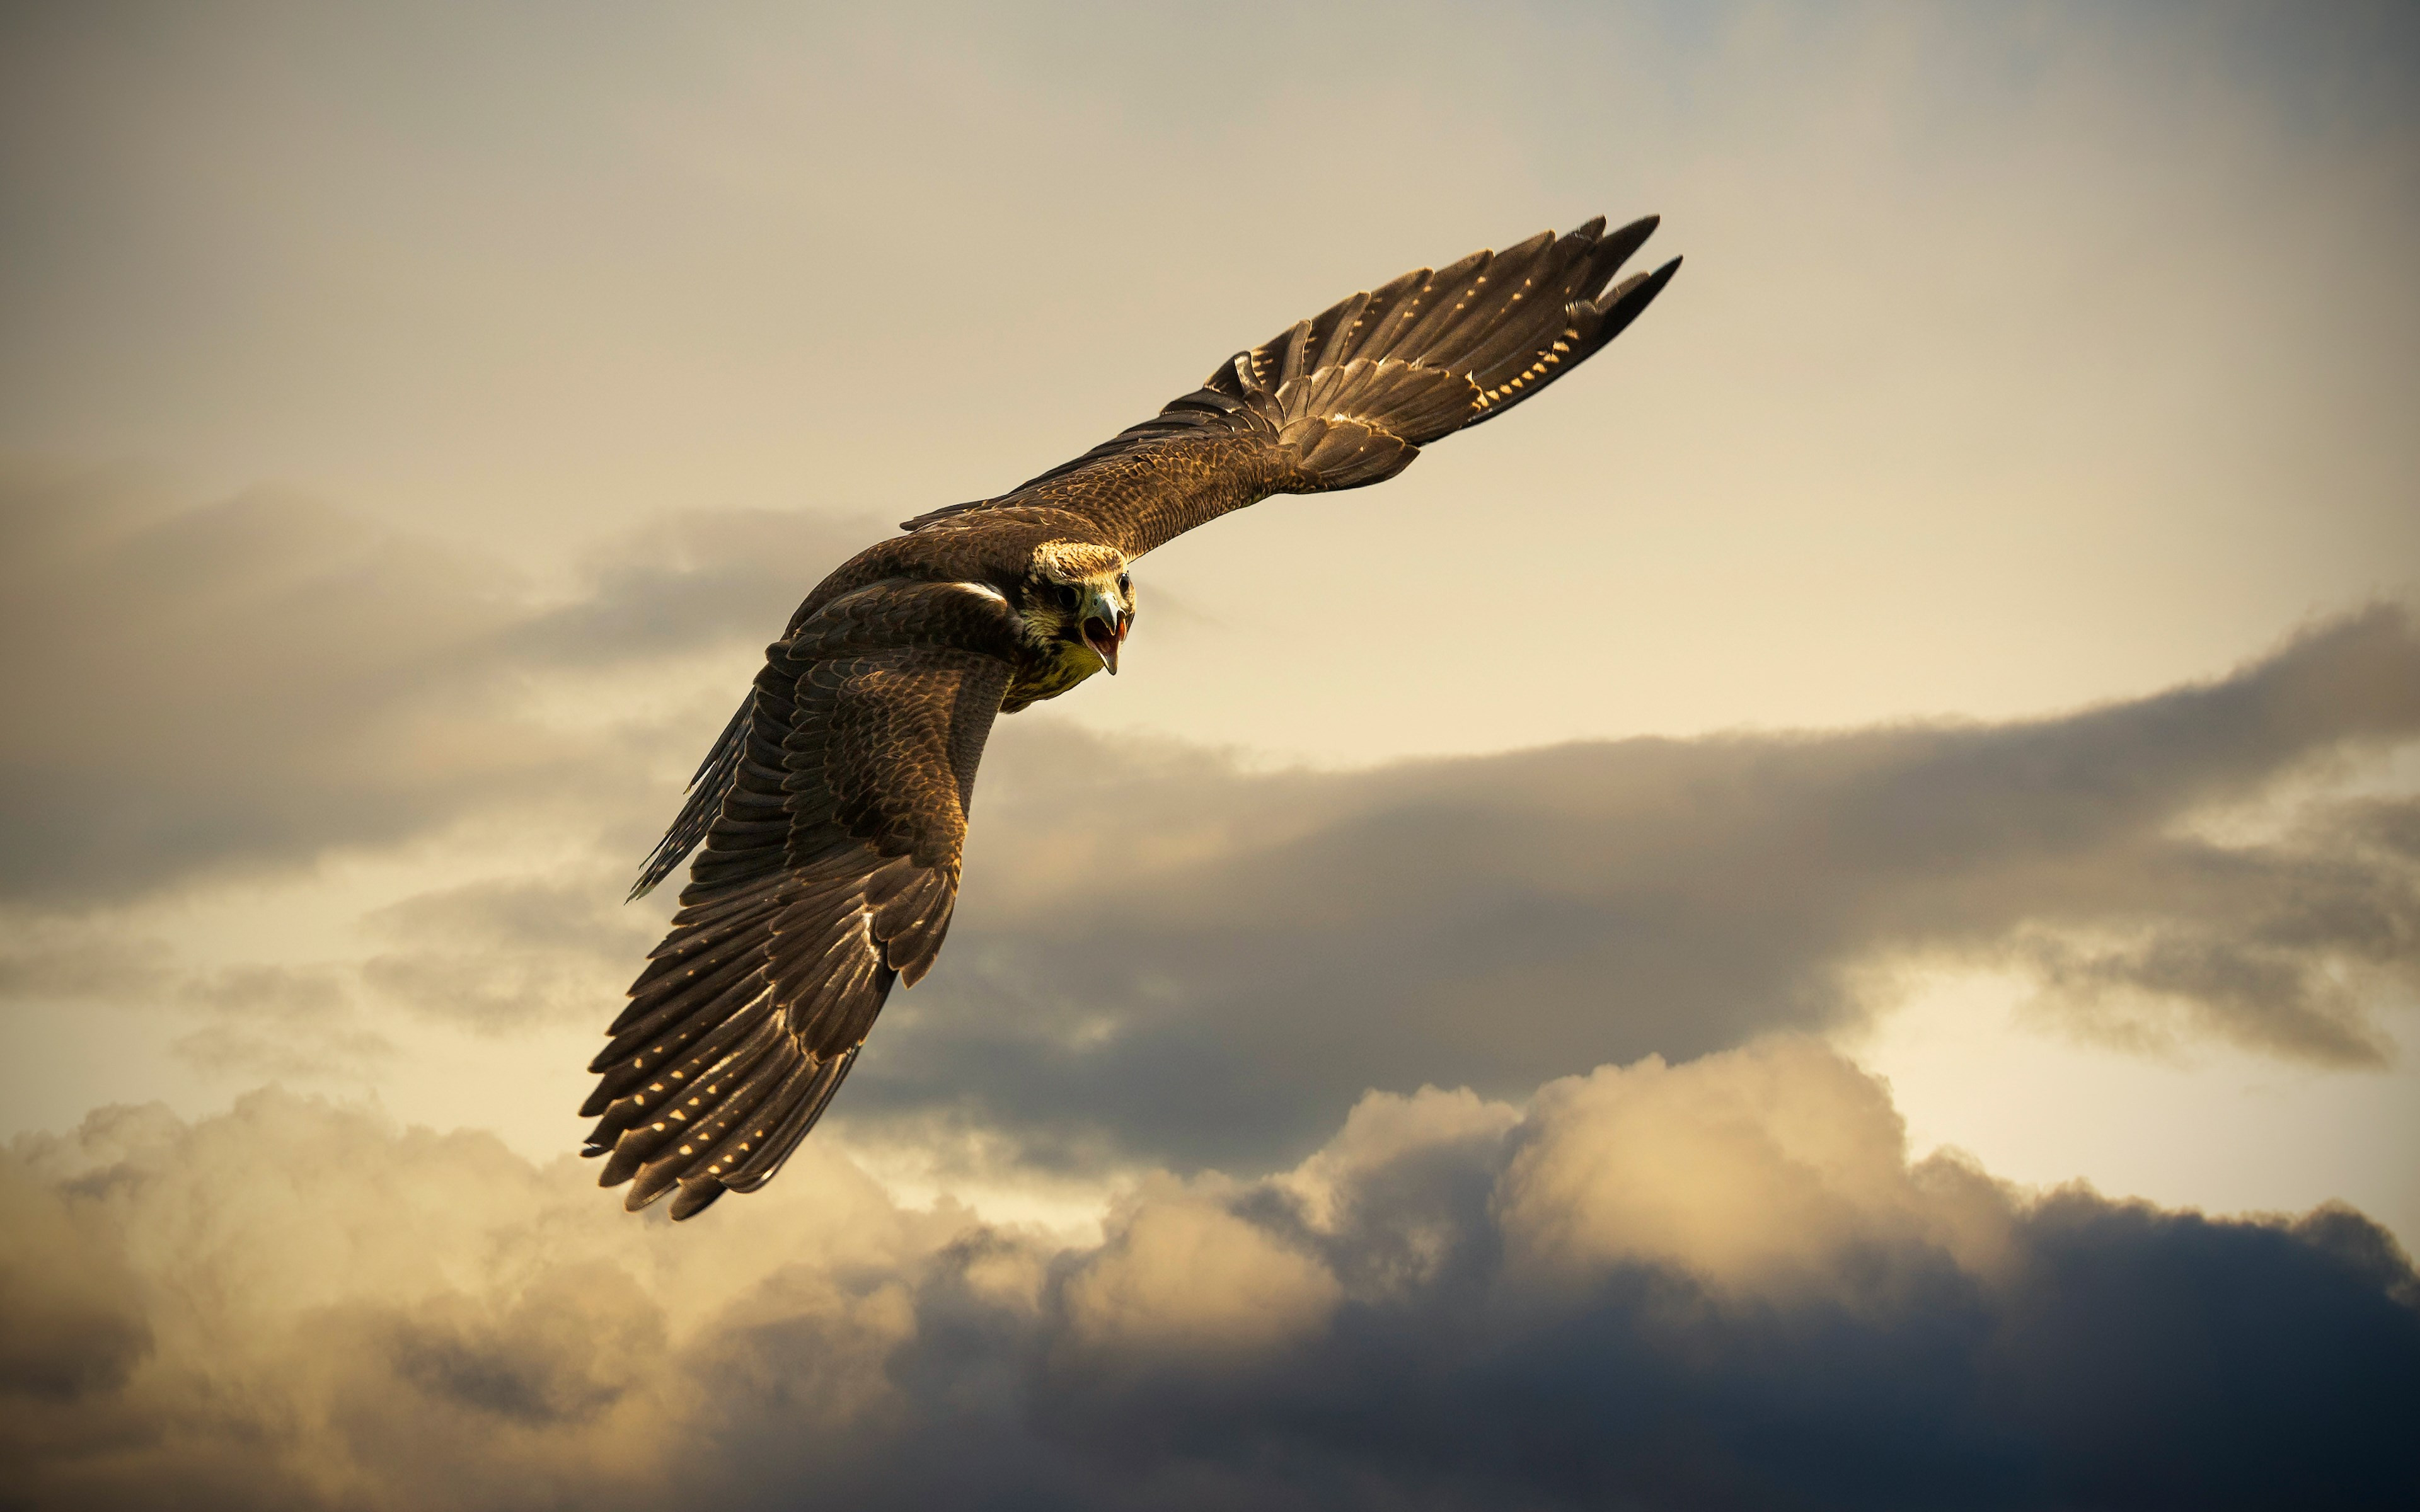 Flying hawk | 3840x2400 wallpaper